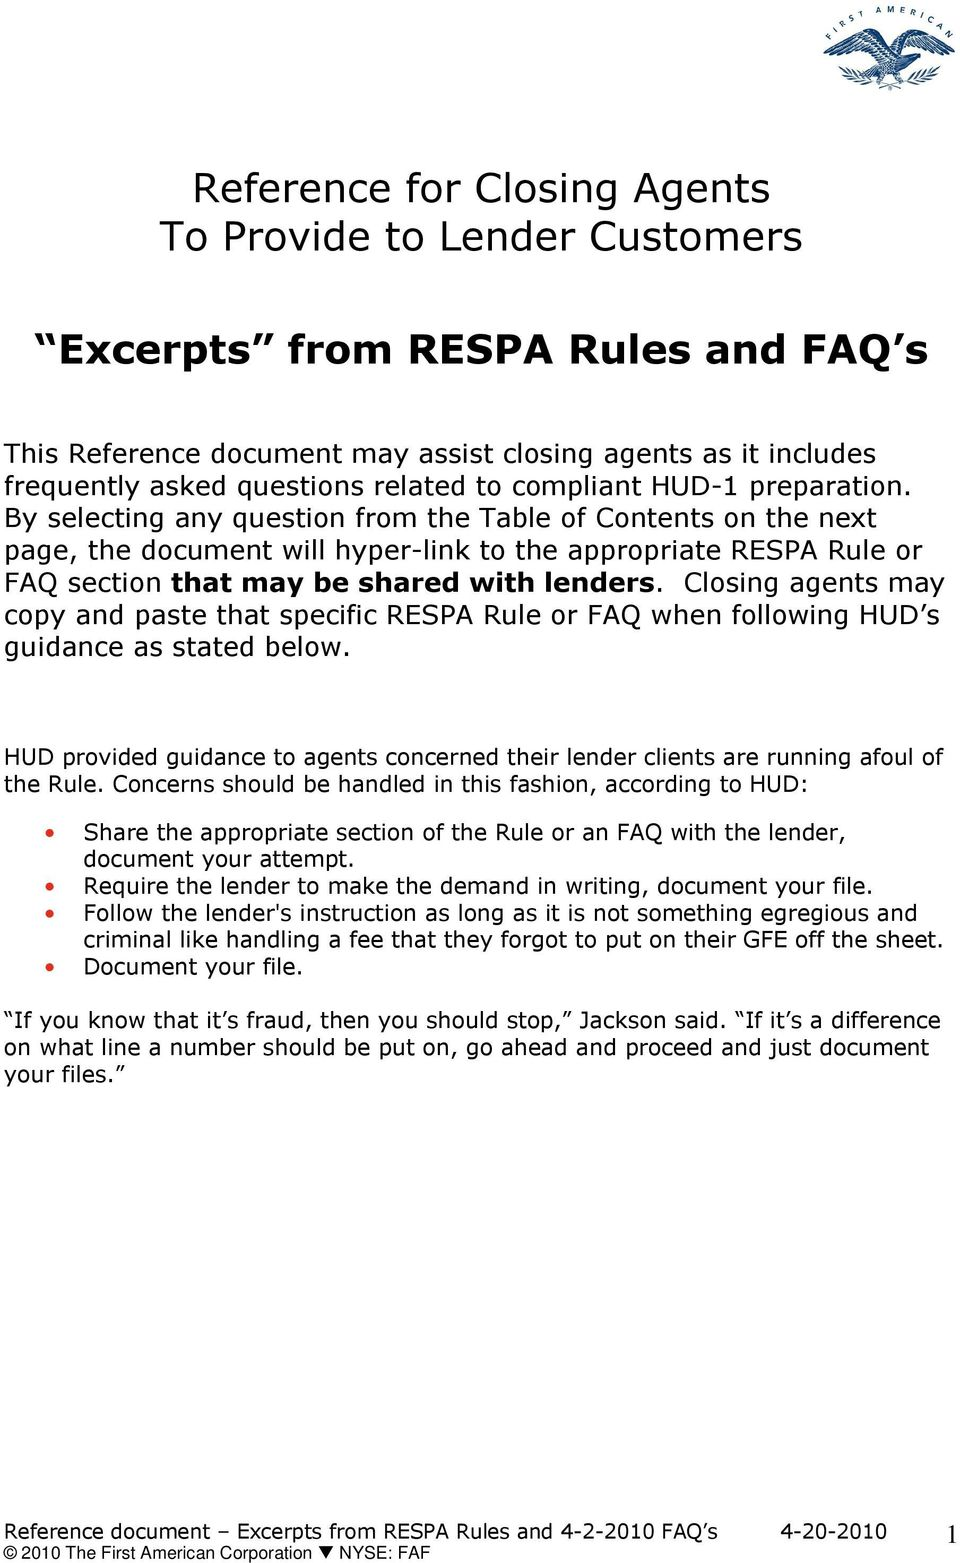 By selecting any question from the Table of Contents on the next page, the document will hyper-link to the appropriate RESPA Rule or FAQ section that may be shared with lenders.